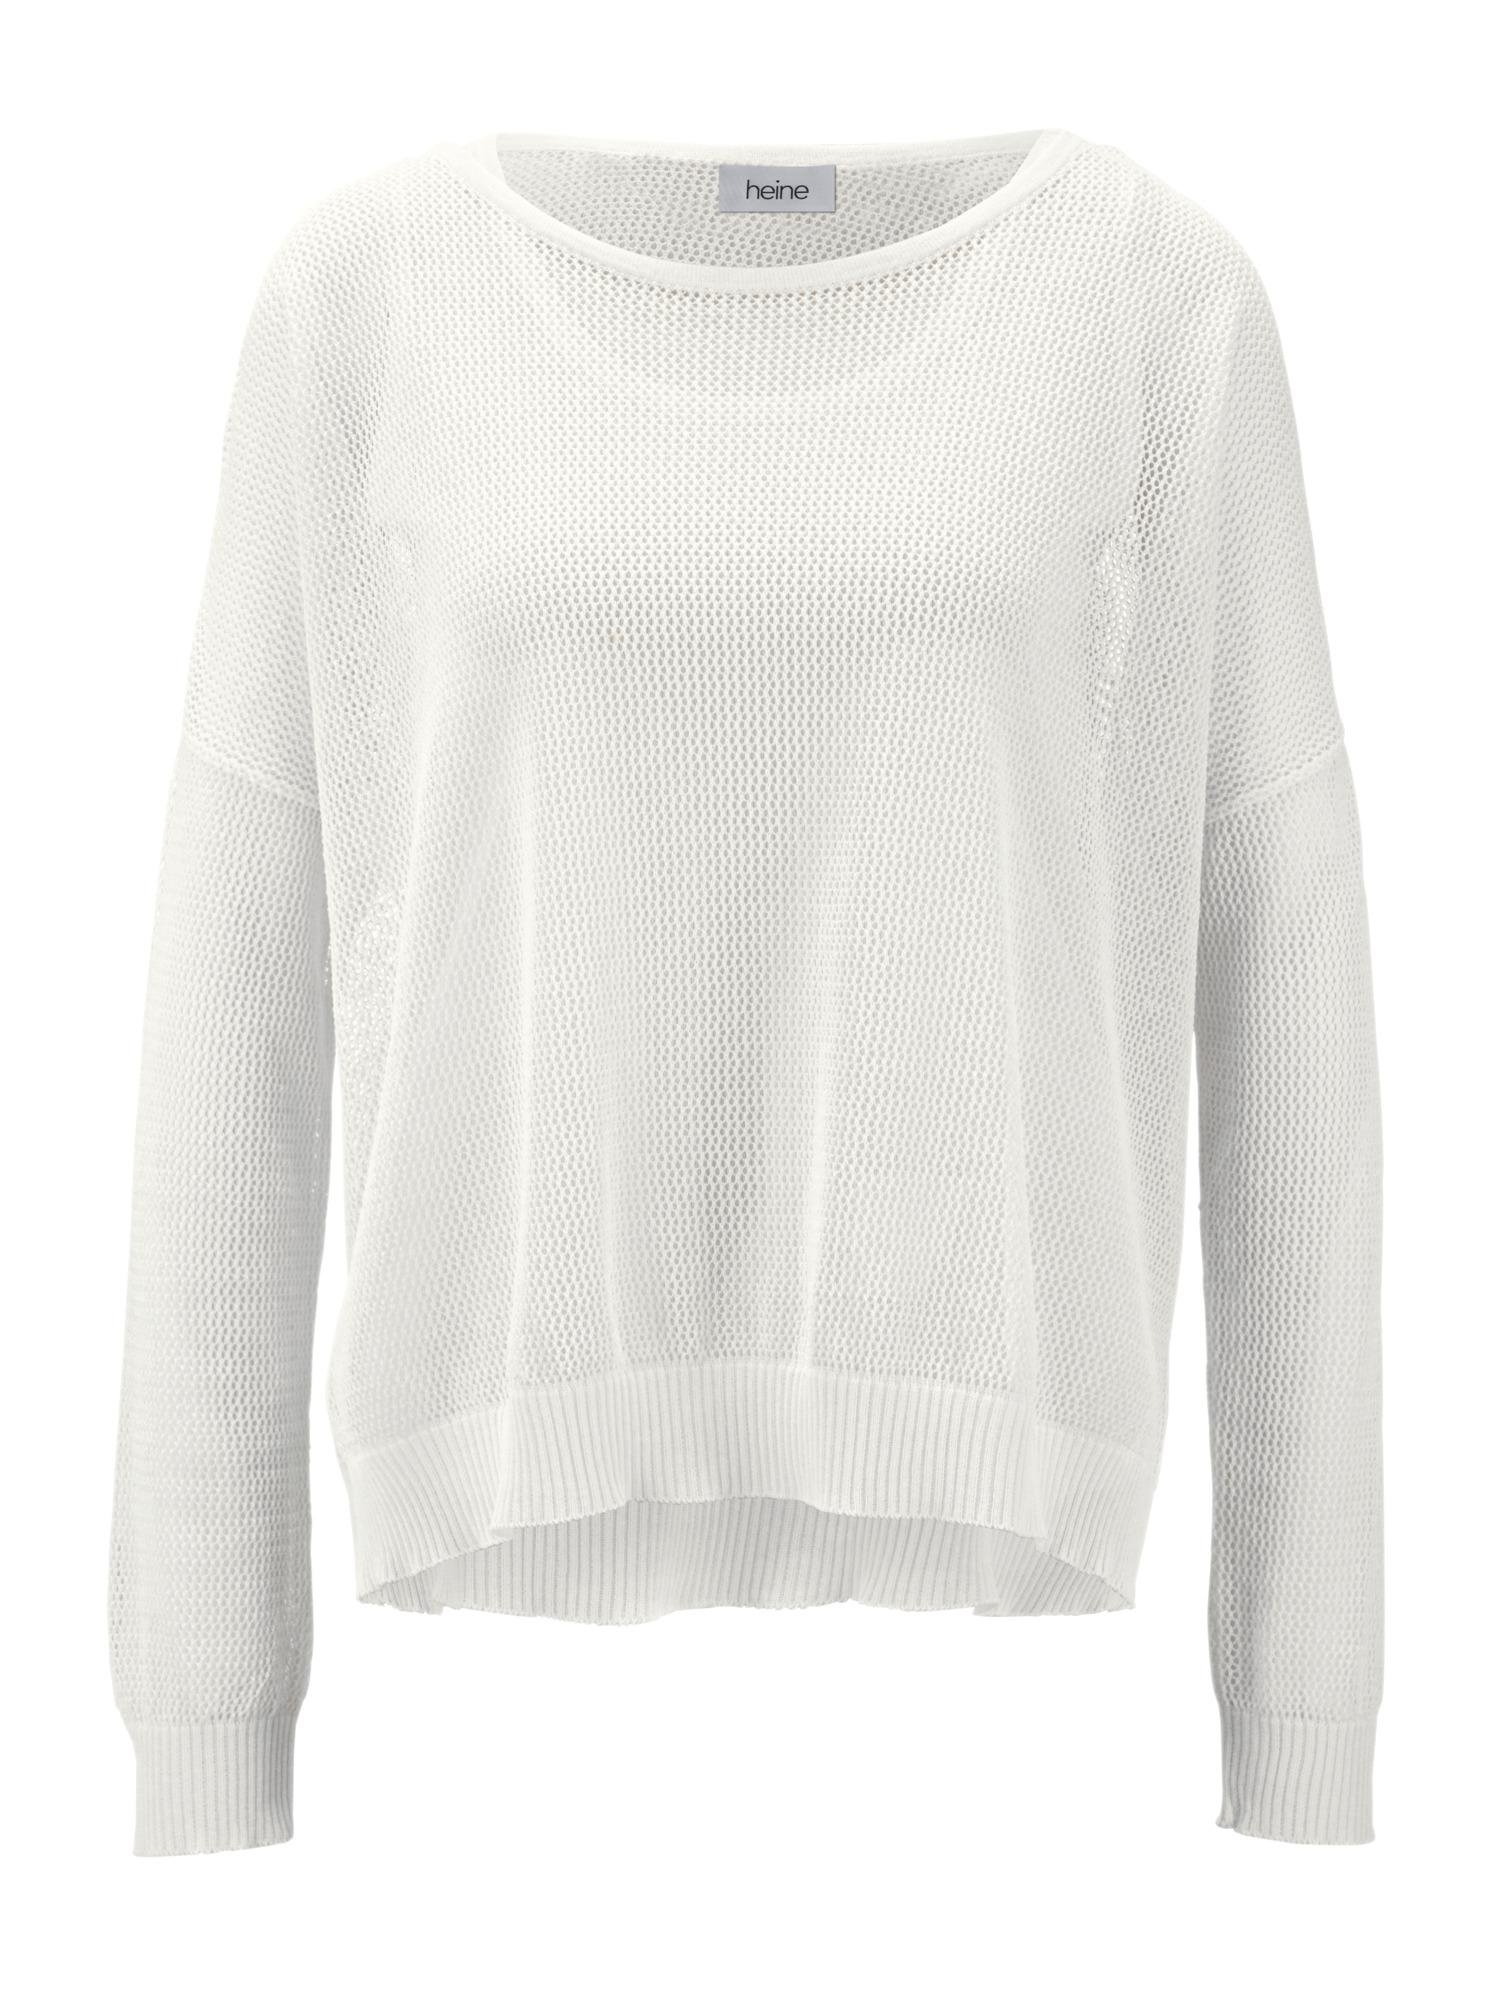 Ashley Brooke By Heine Pullover met ronde hals nu online bestellen